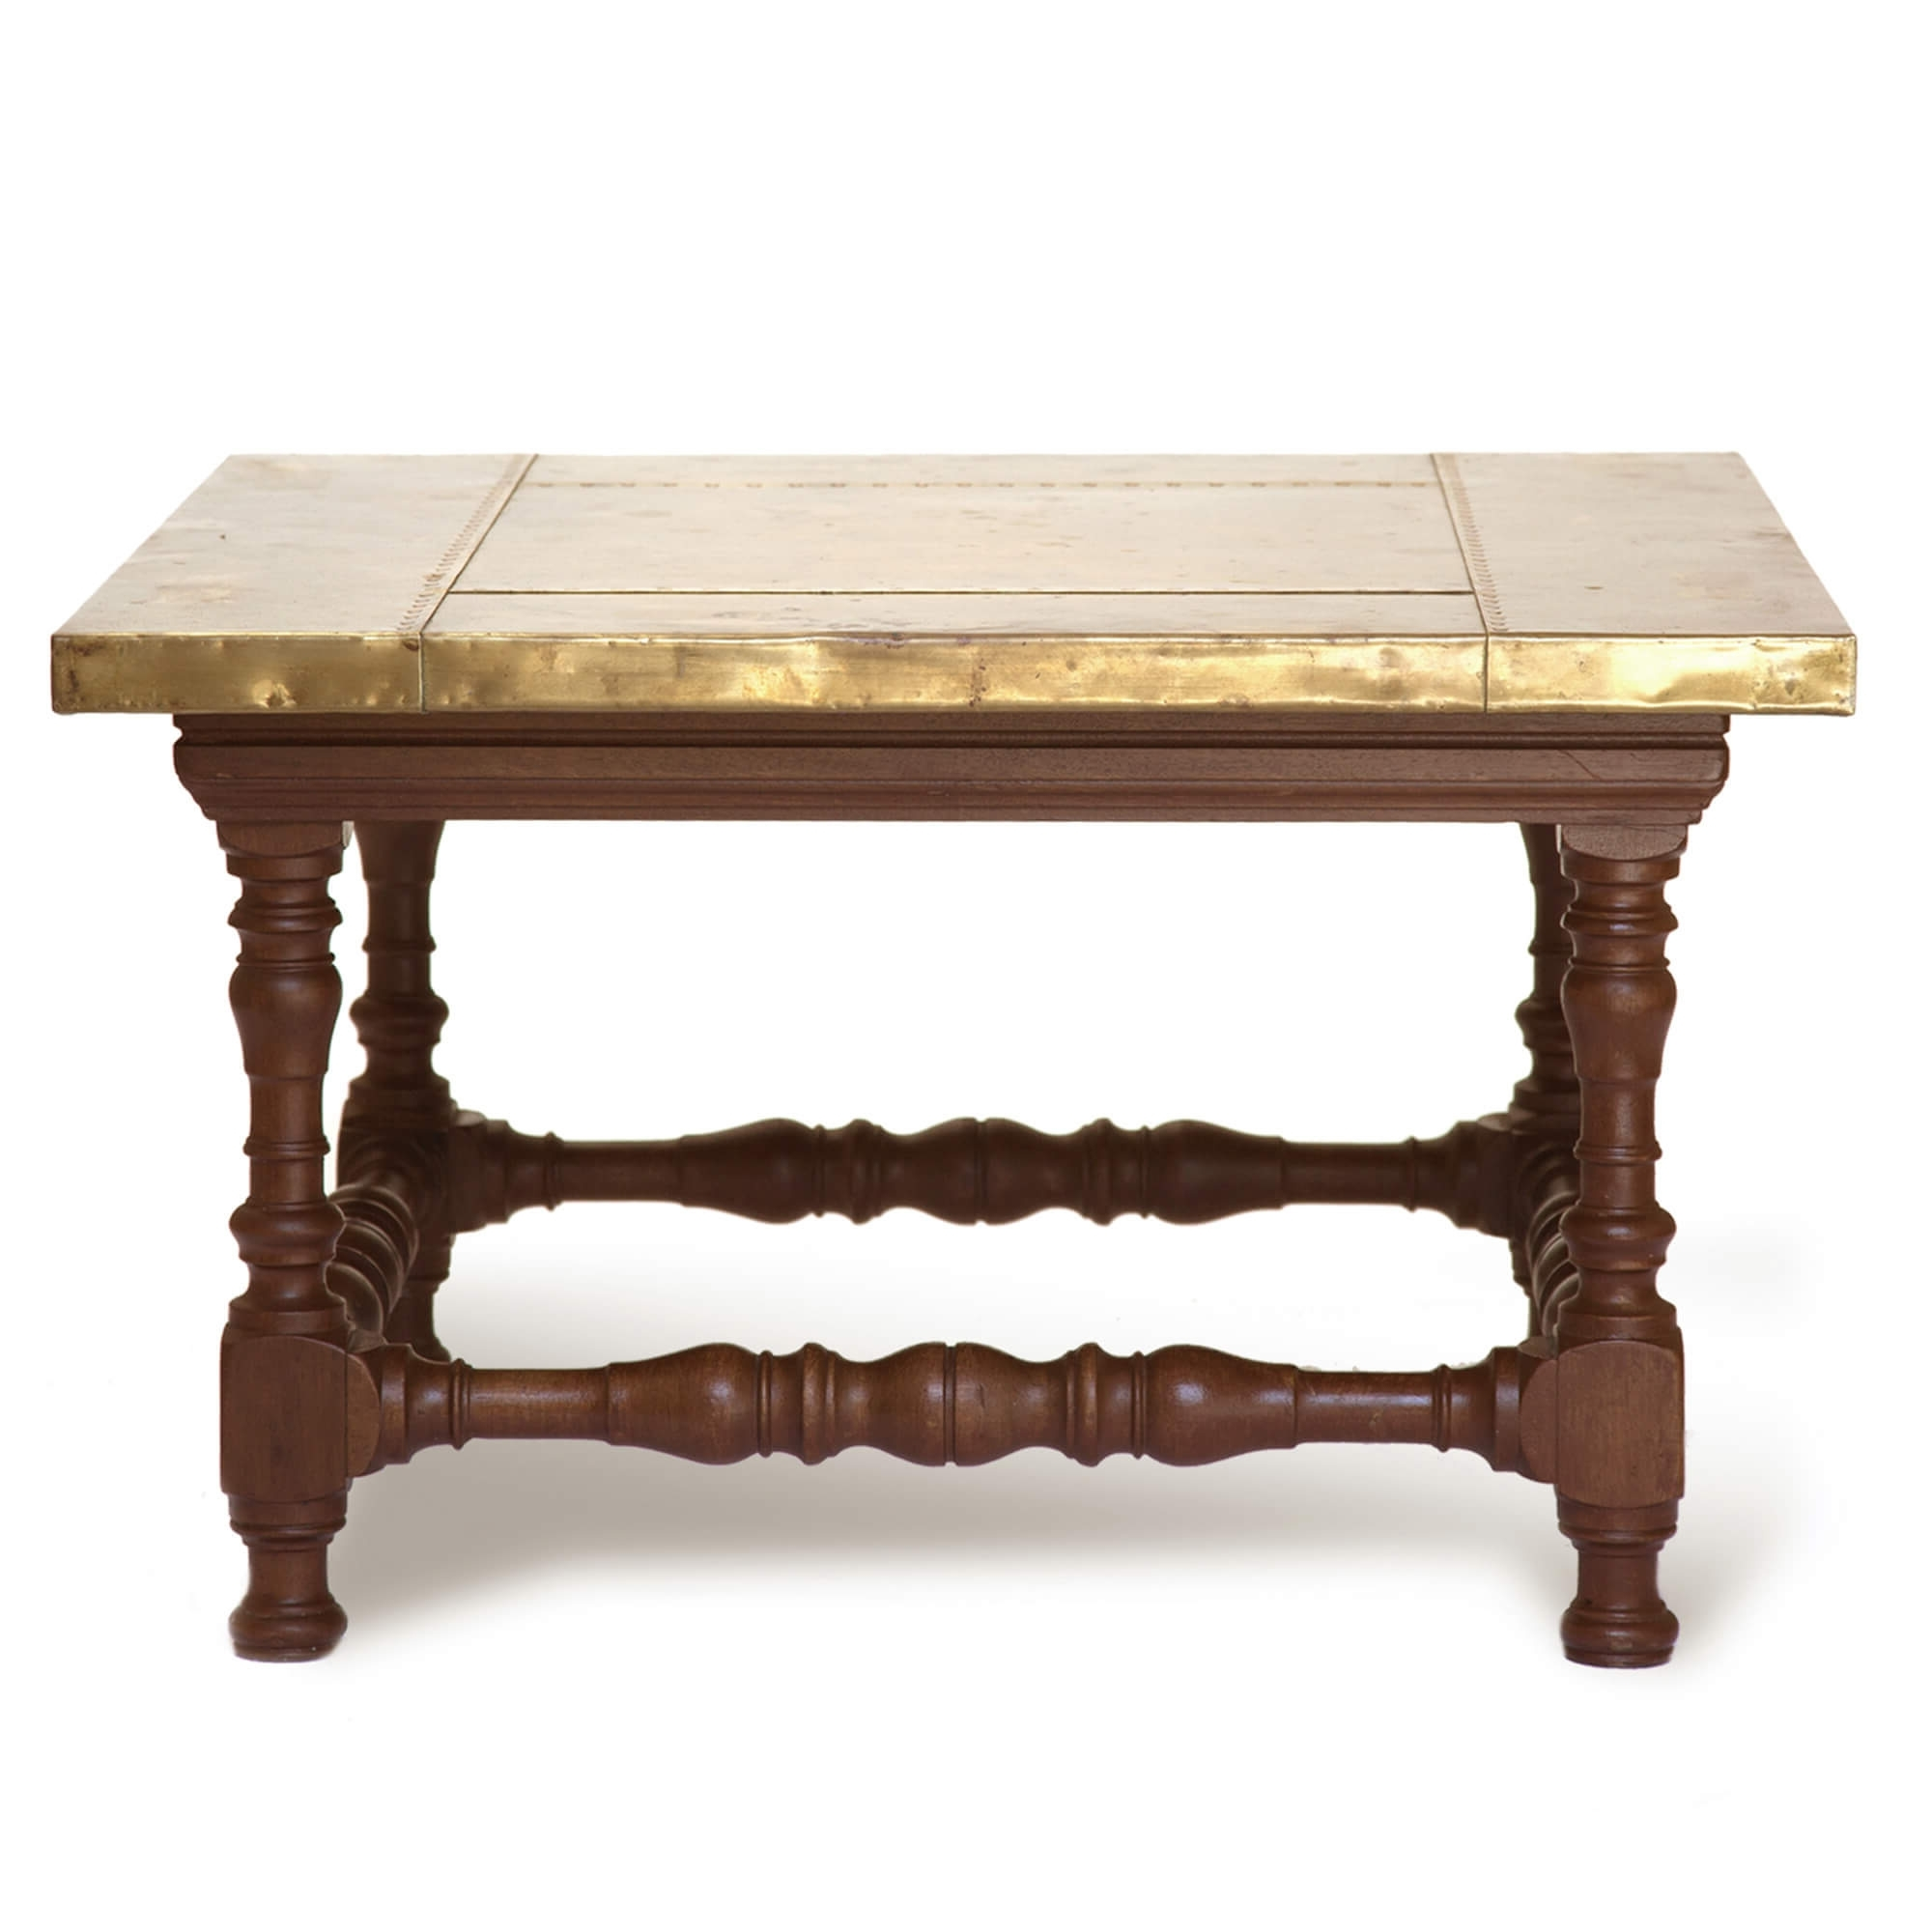 Most Recent Antique Brass Coffee Tables Pertaining To Vintage Brass Topped Coffee Table (View 15 of 20)